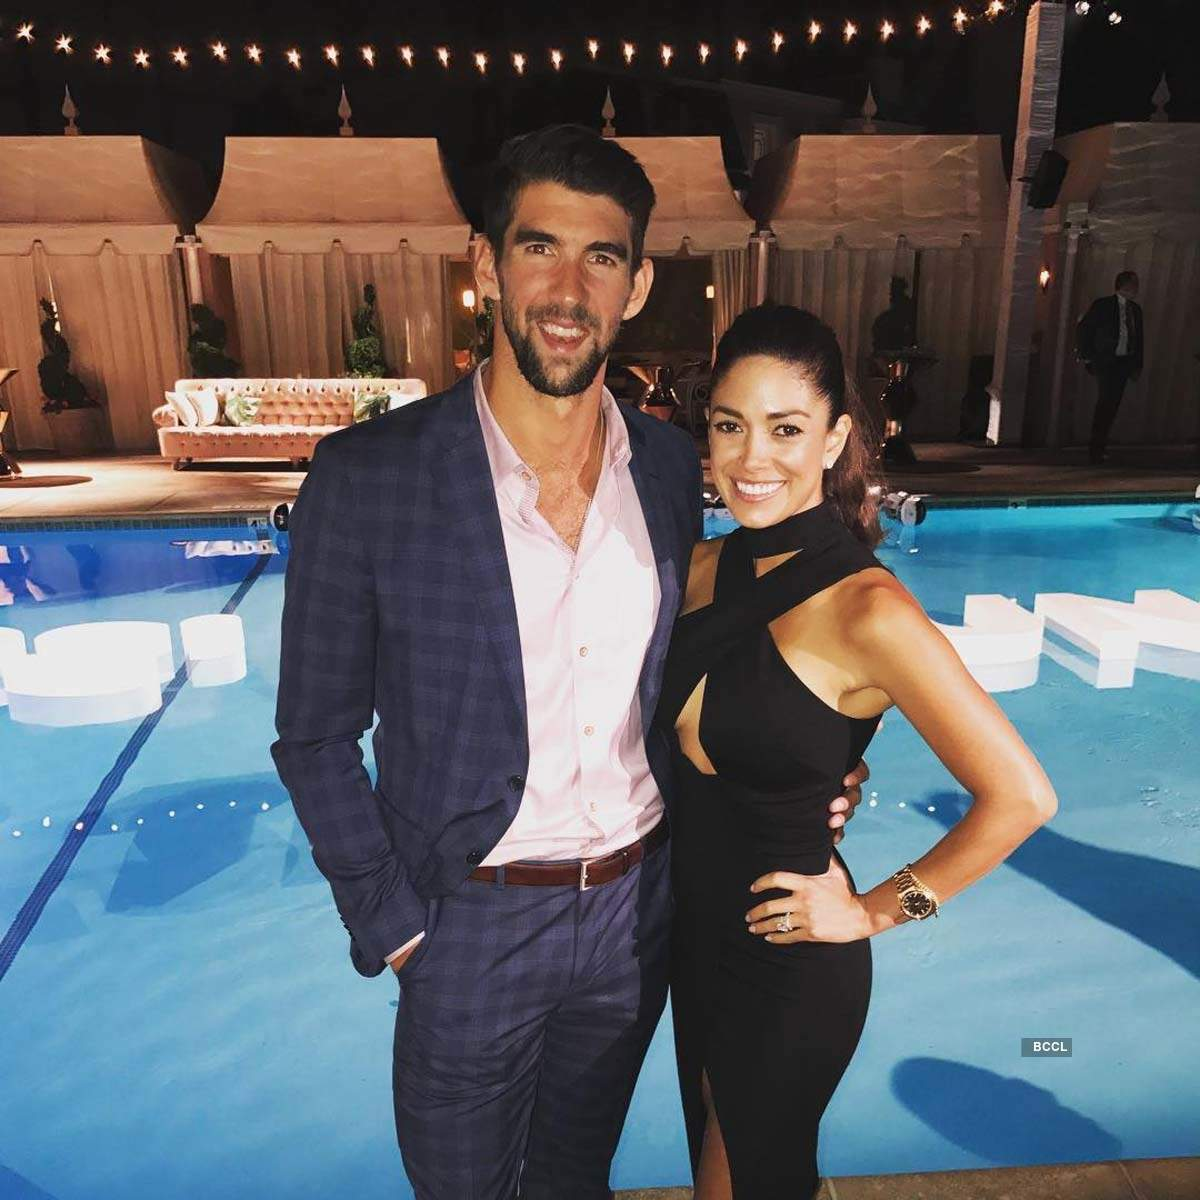 A sneak peek into the personal life of the most decorated Olympian Michael Phelps